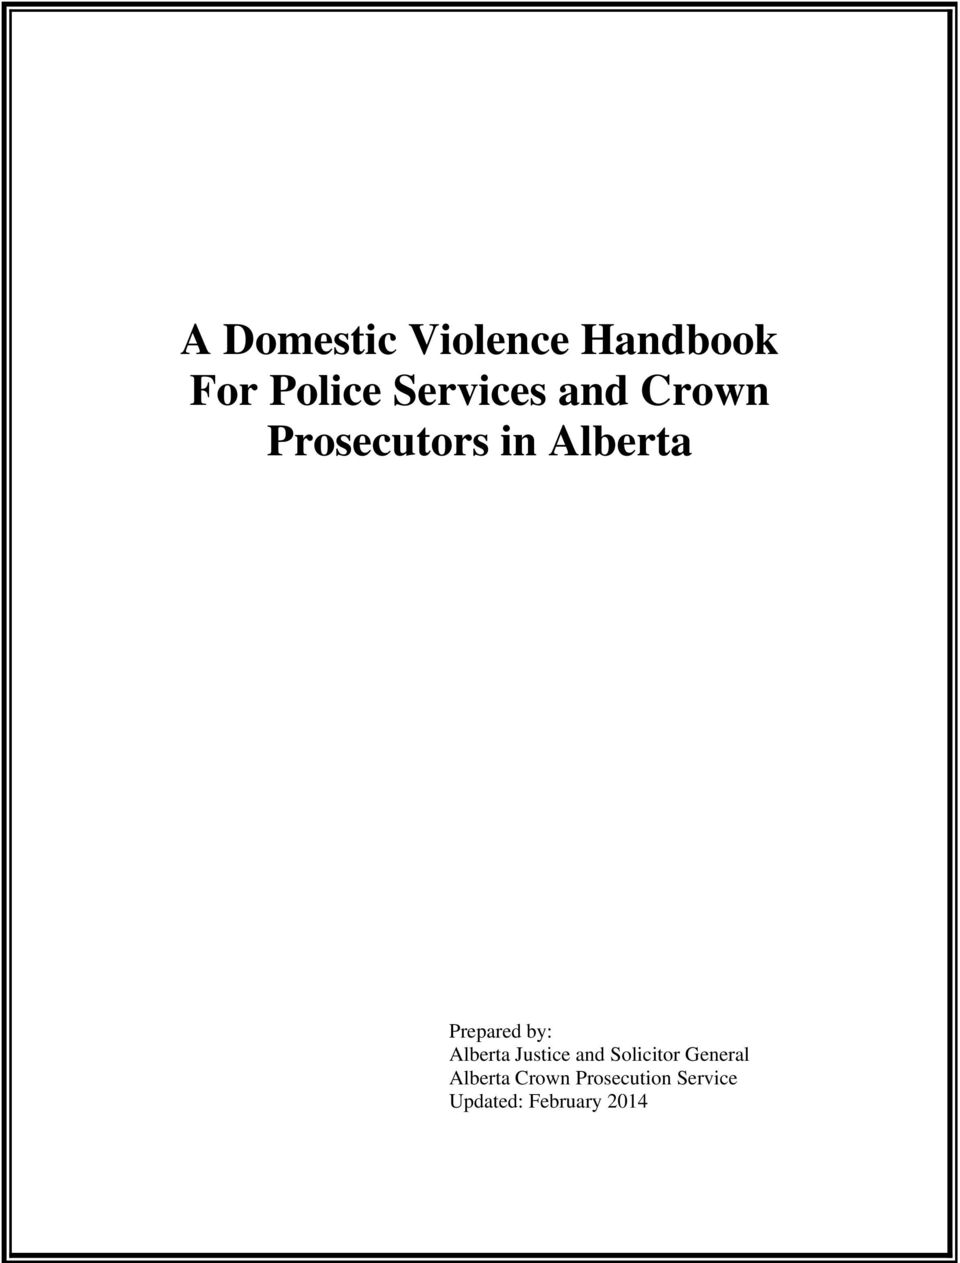 Prepared by: Alberta Justice and Solicitor